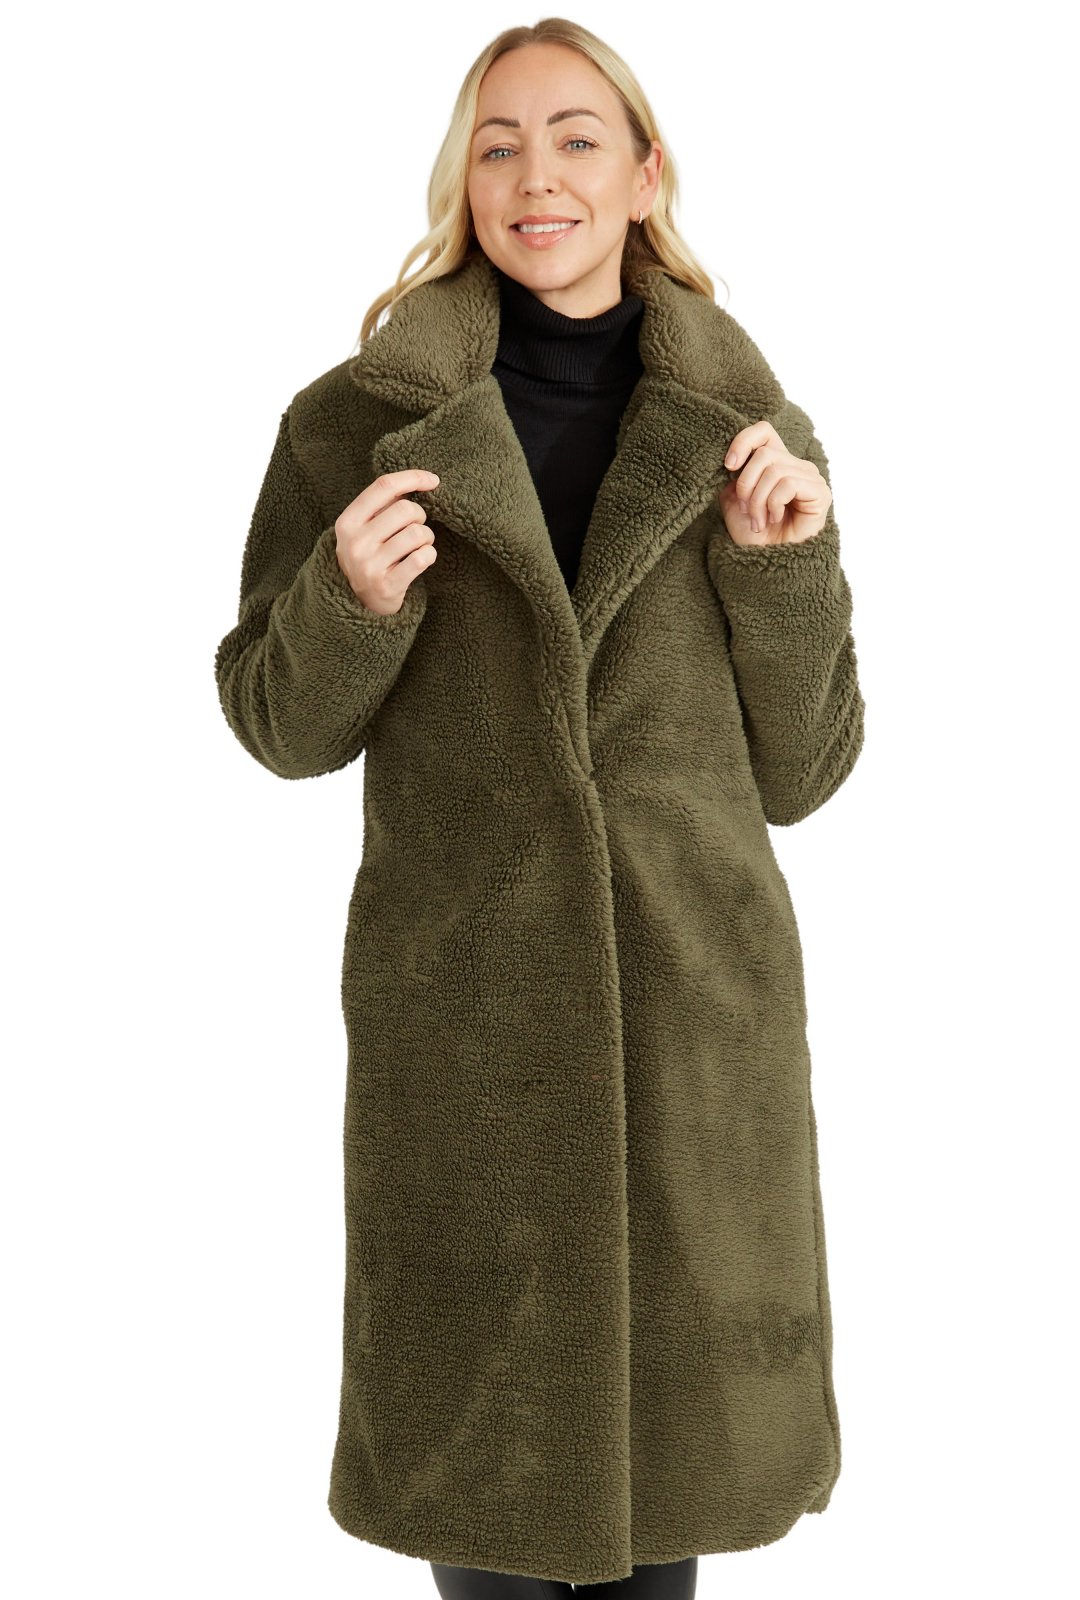 Lined Teddy Sloane Long Coat in Olive 7084 by Baciano